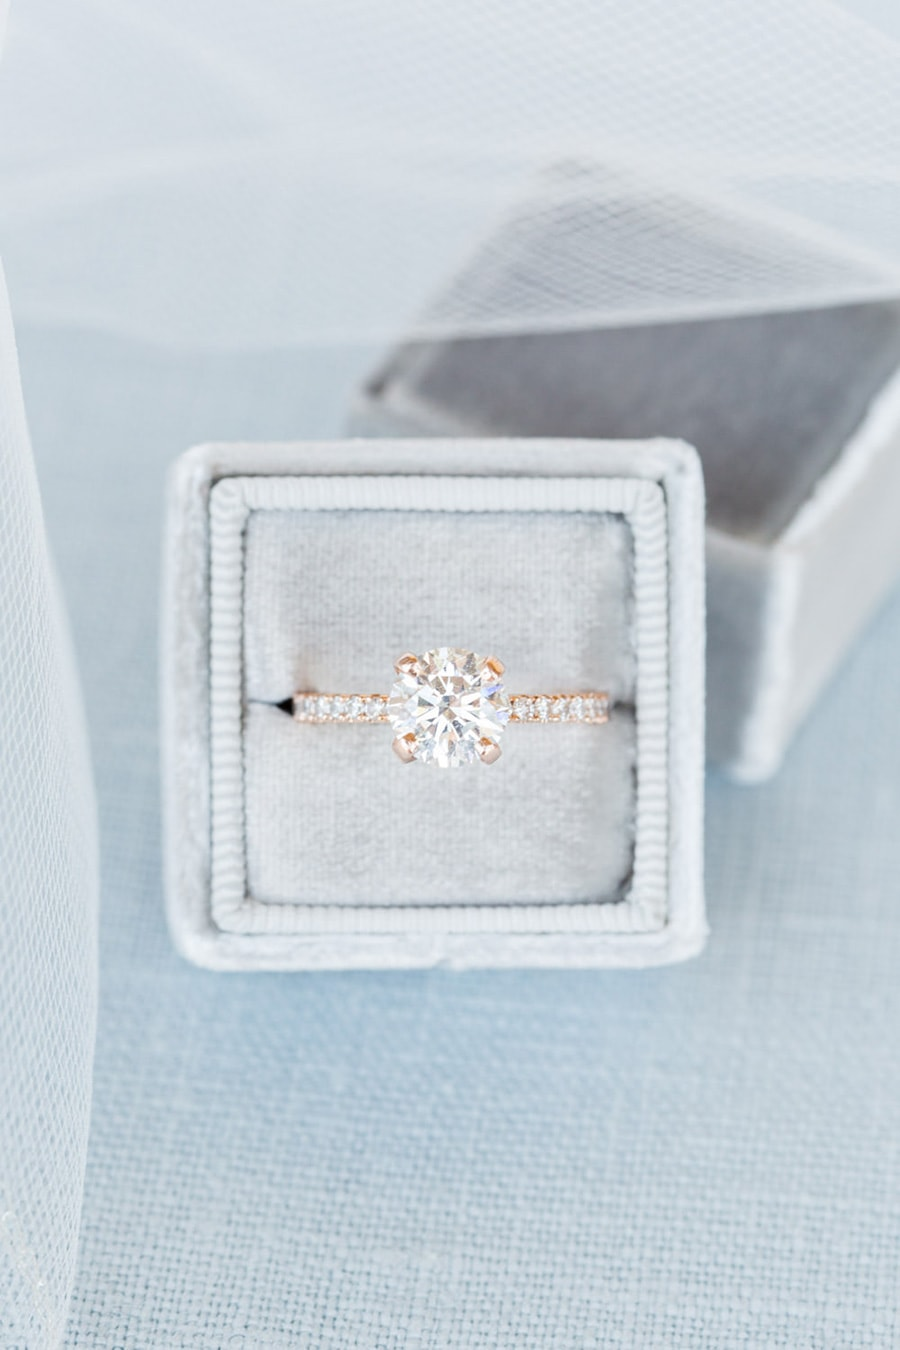 Rose gold solitaire diamond engagement ring with pave band displayed in grey velvet ring box | Photography: Cavin Elizabeth Photography